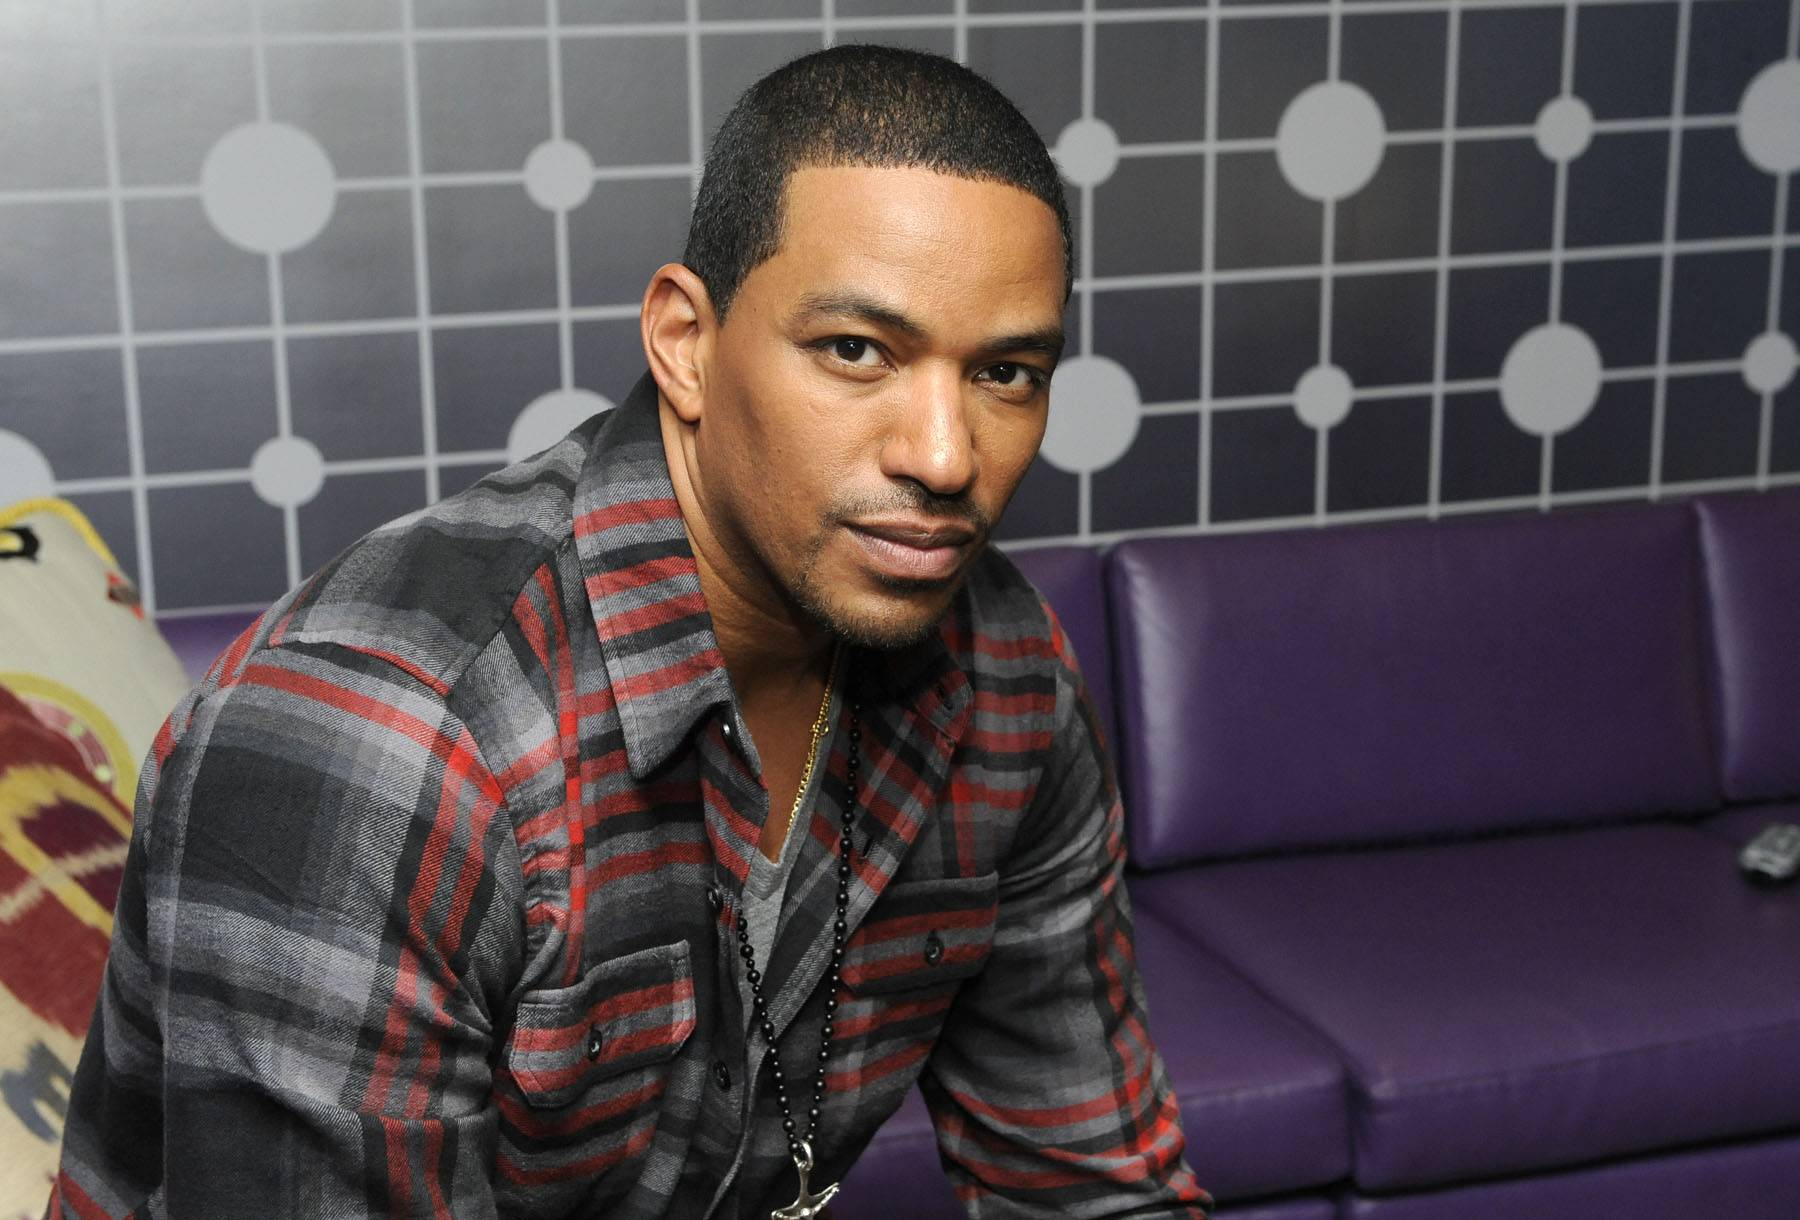 Laz Alonso Teams Up With HBCU Celeb Alums  - Morehouse College?s formerly only living female graduate passes away, Howard alum Laz Alonso wants to save HBCUs, plus more. ?Dominique Zony?? (@DominiqueZonyee)Actor and Howard University alumLaz Alonso is on a mission to save HBCUs. He recently chatted with Roland Martin on NewsOne Now to talk about how he and fellow alums are helping to save historically Black colleges and universities. ?A group of us ? Lance Gross, Marlon Wayans, myself ? are putting together a call to action for alumni,? said Alonso.(Photo: John Ricard / BET)